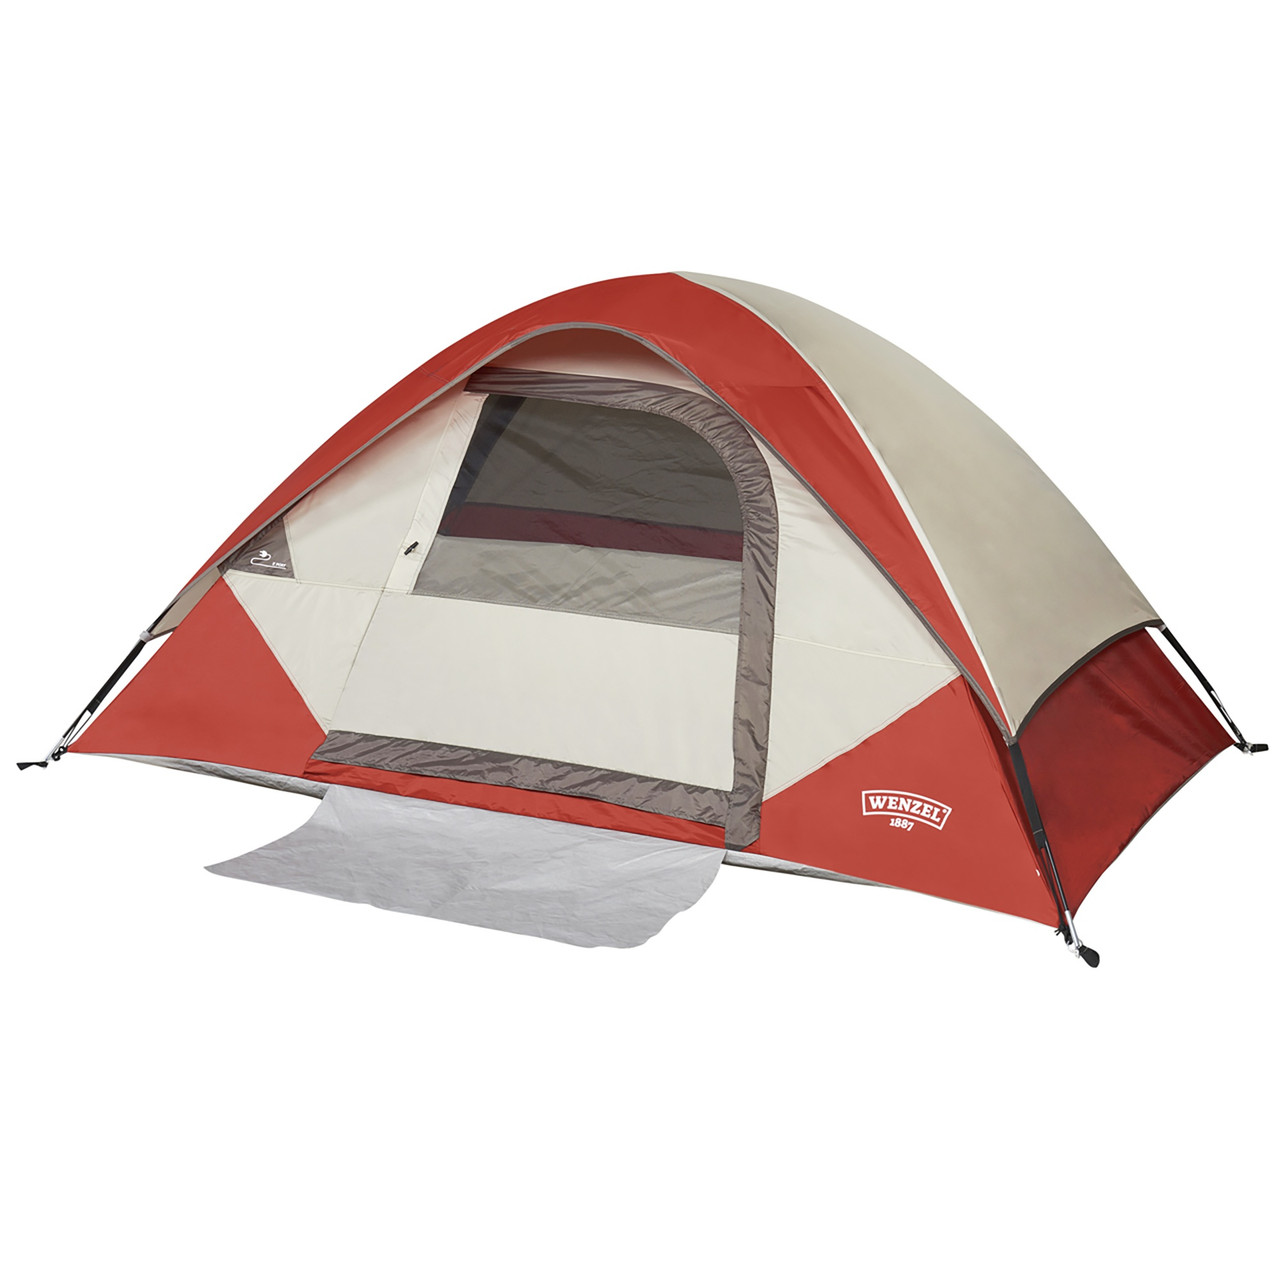 Wenzel Torry 2 Person Dome Tent, red/white, front view, with fly attached